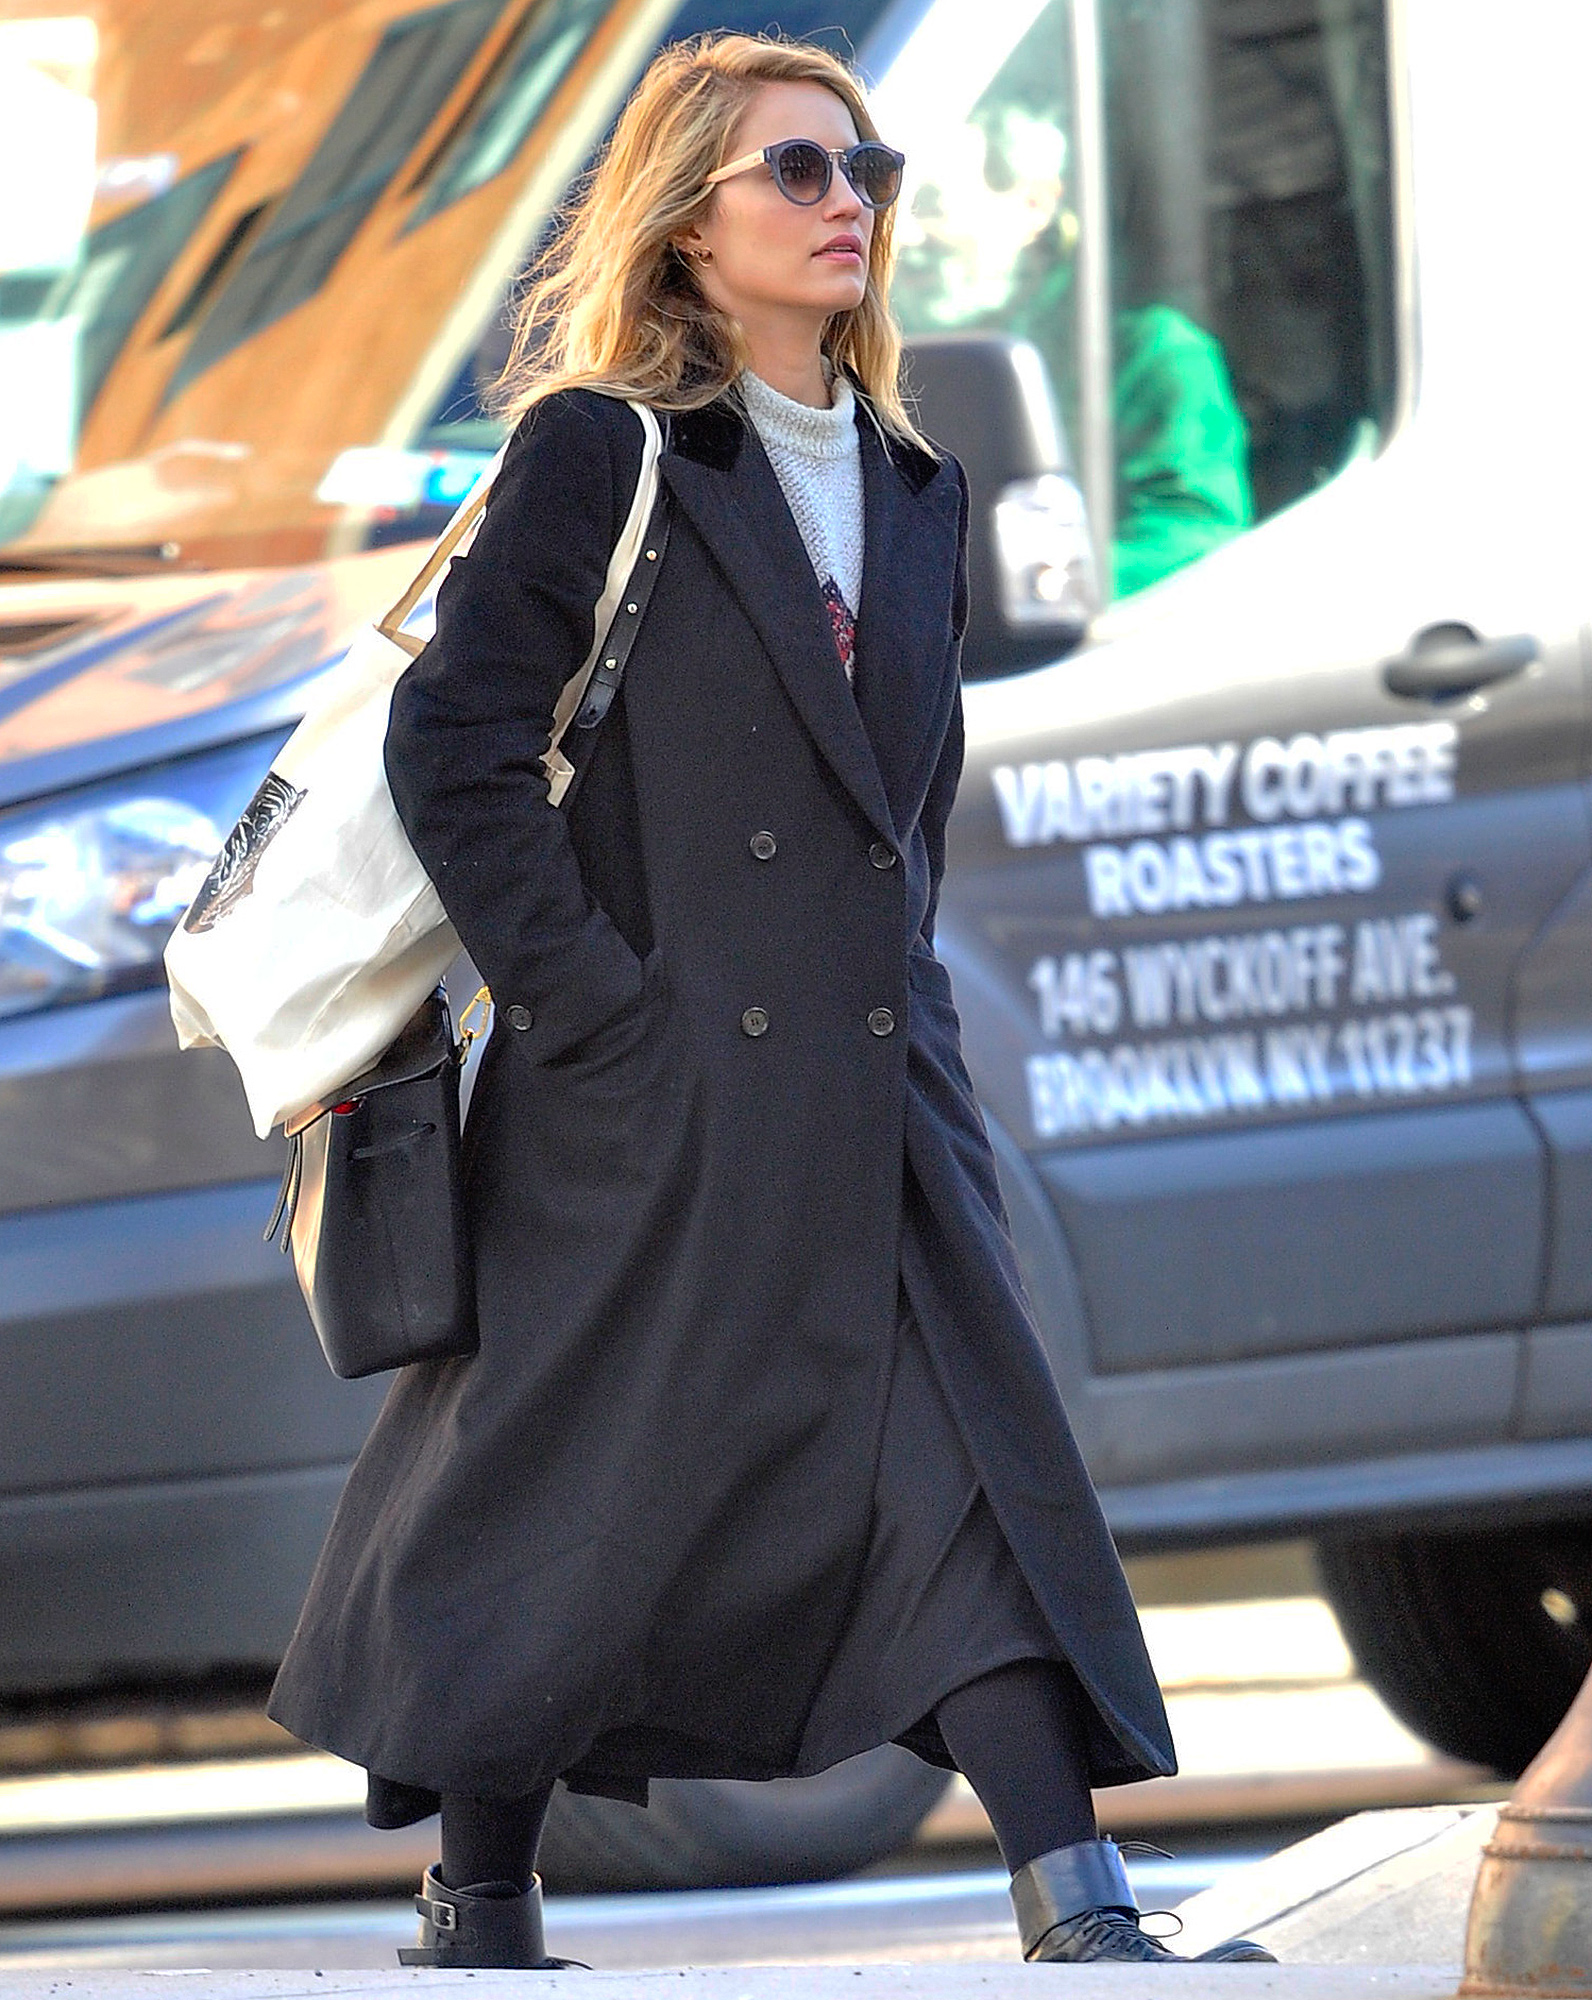 EXCLUSIVE: Dianna Agron wears a large black trench coat as she is seen out in SOHO in New York City.